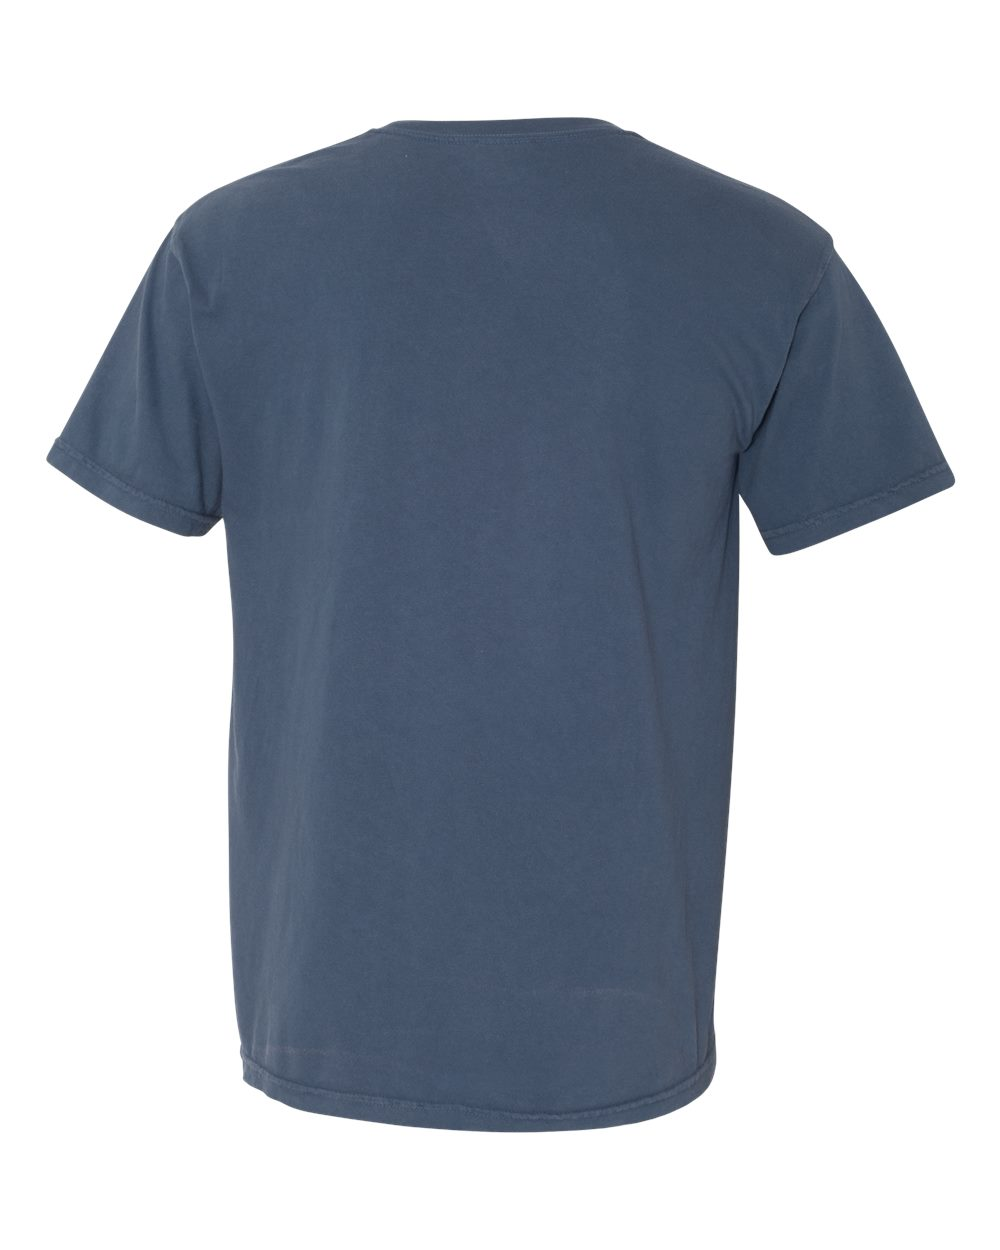 Comfort-Colors-Men-039-s-6-1-oz-Garment-Dyed-Pocket-T-Shirt-6030CC-S-3XL thumbnail 61